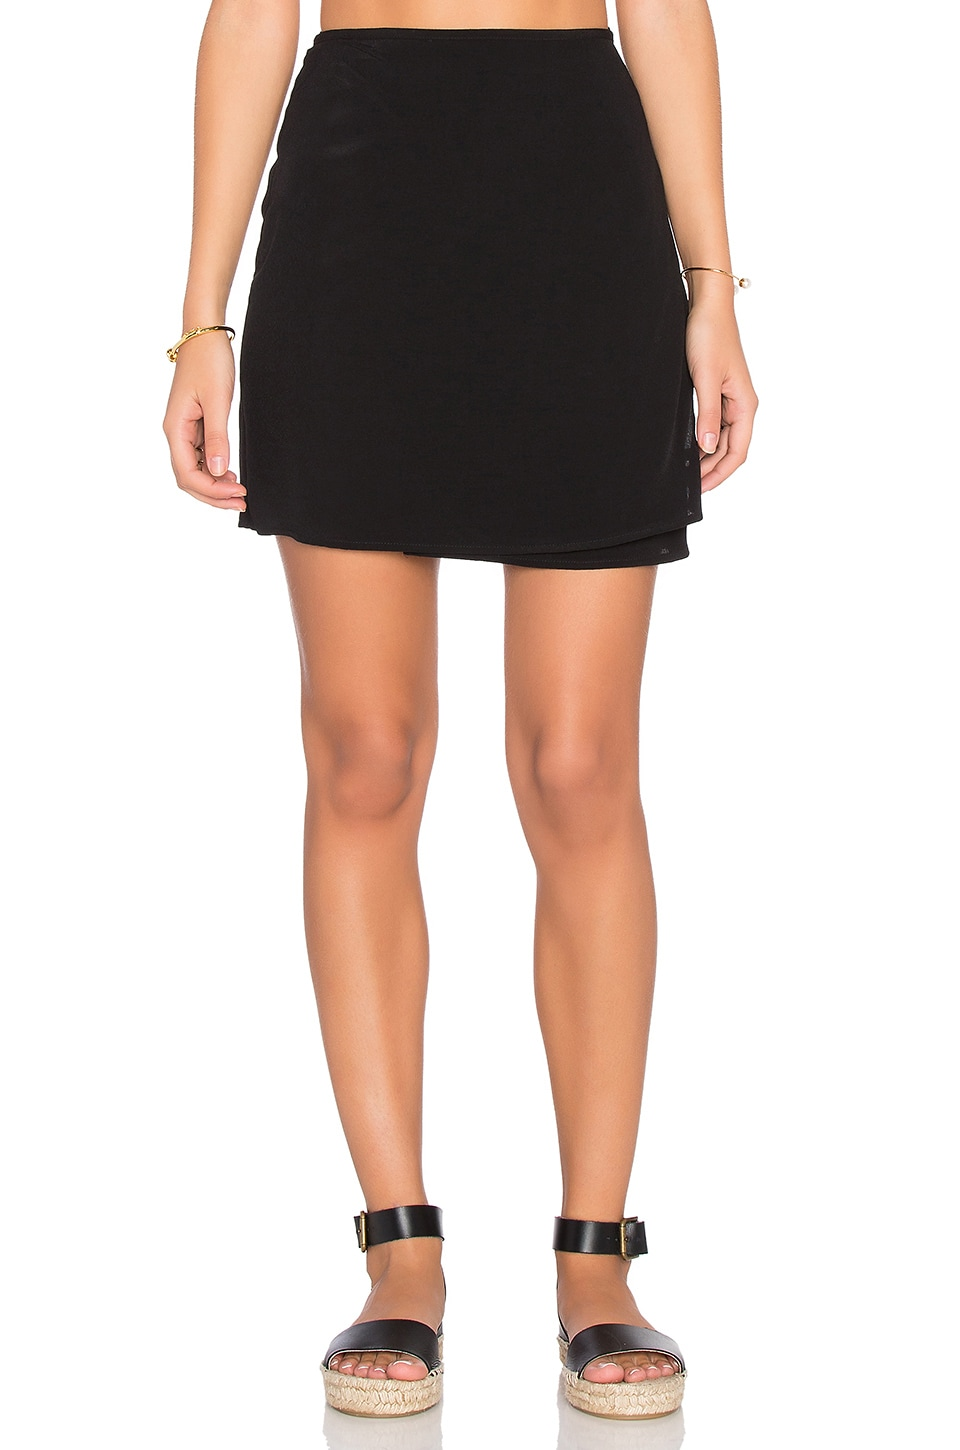 Lisakai Livorno Wrap Skirt in Black